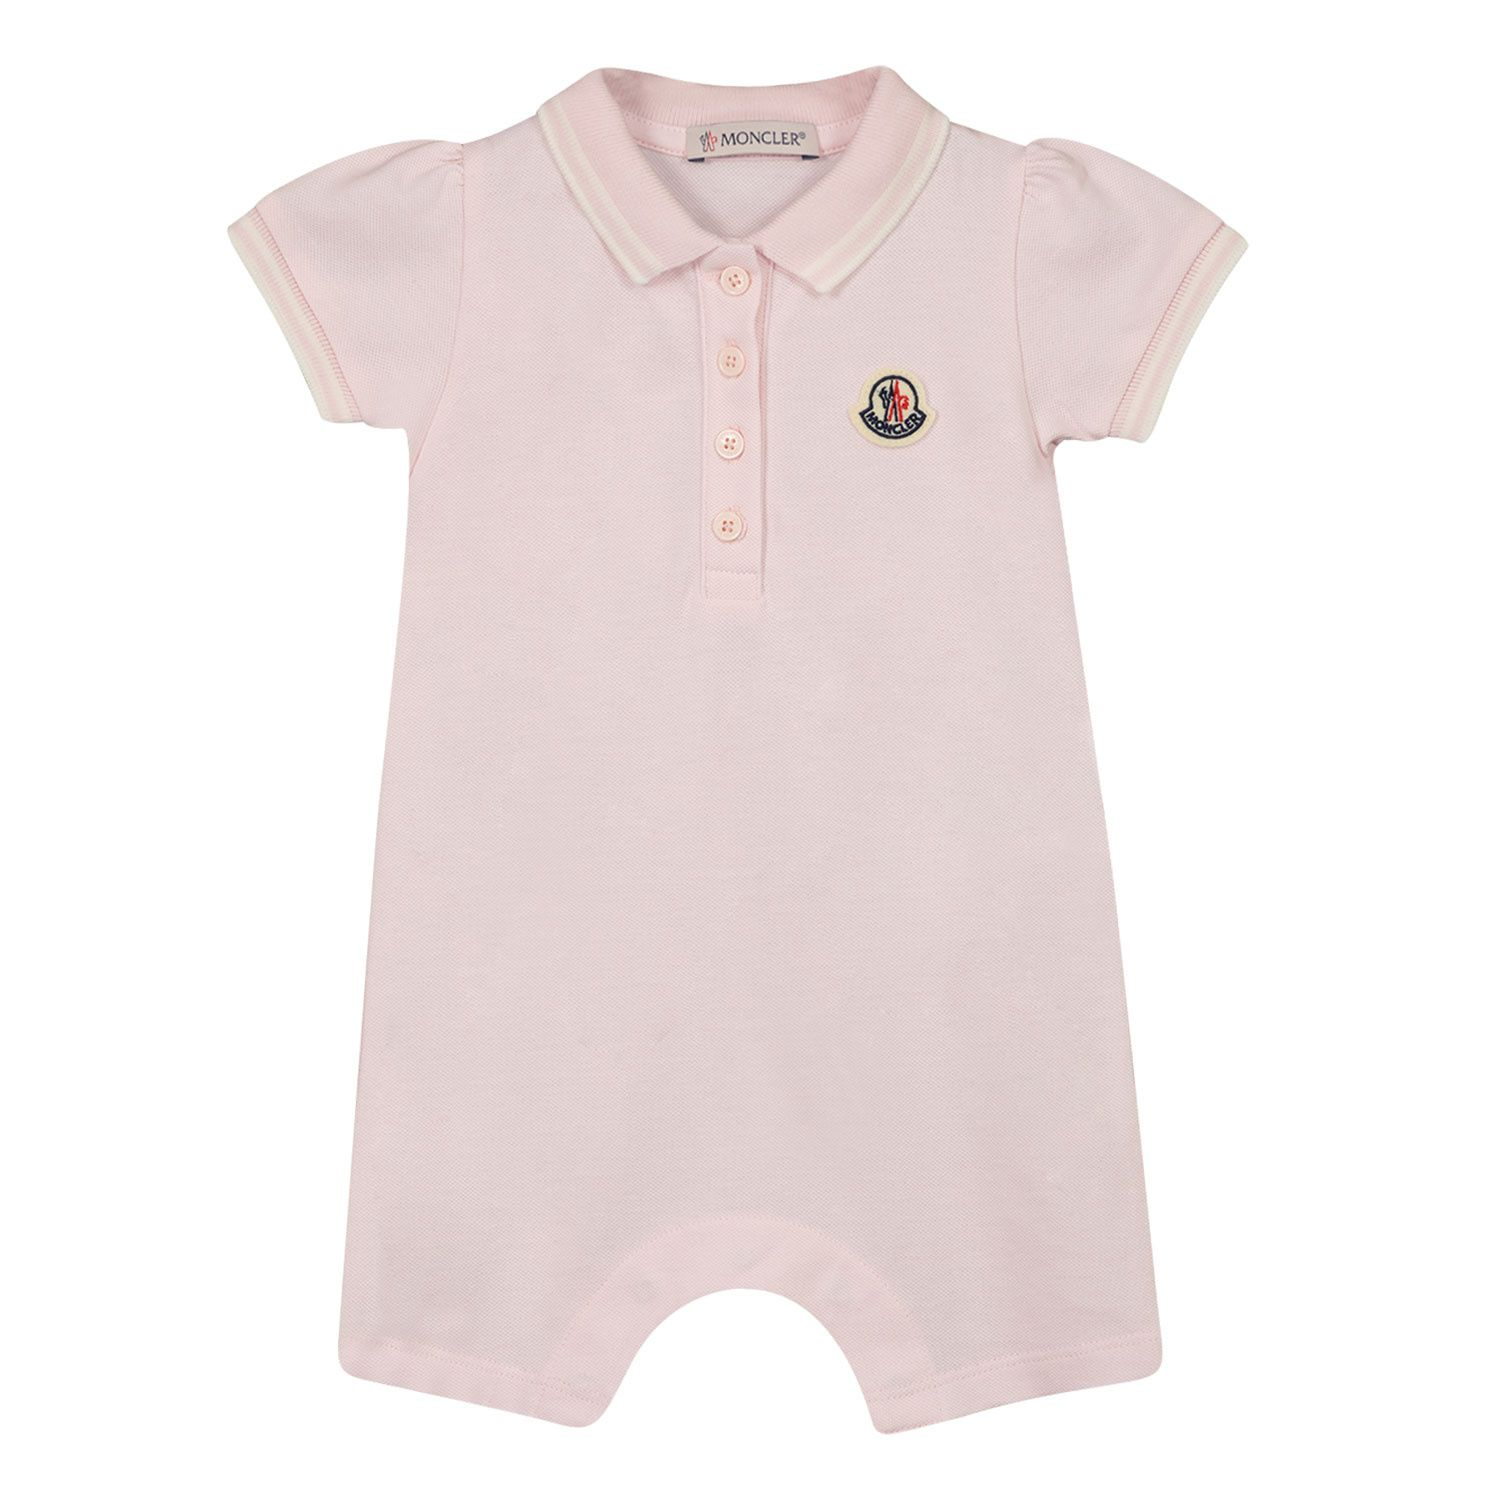 Picture of Moncler 8L70010 baby playsuit light pink